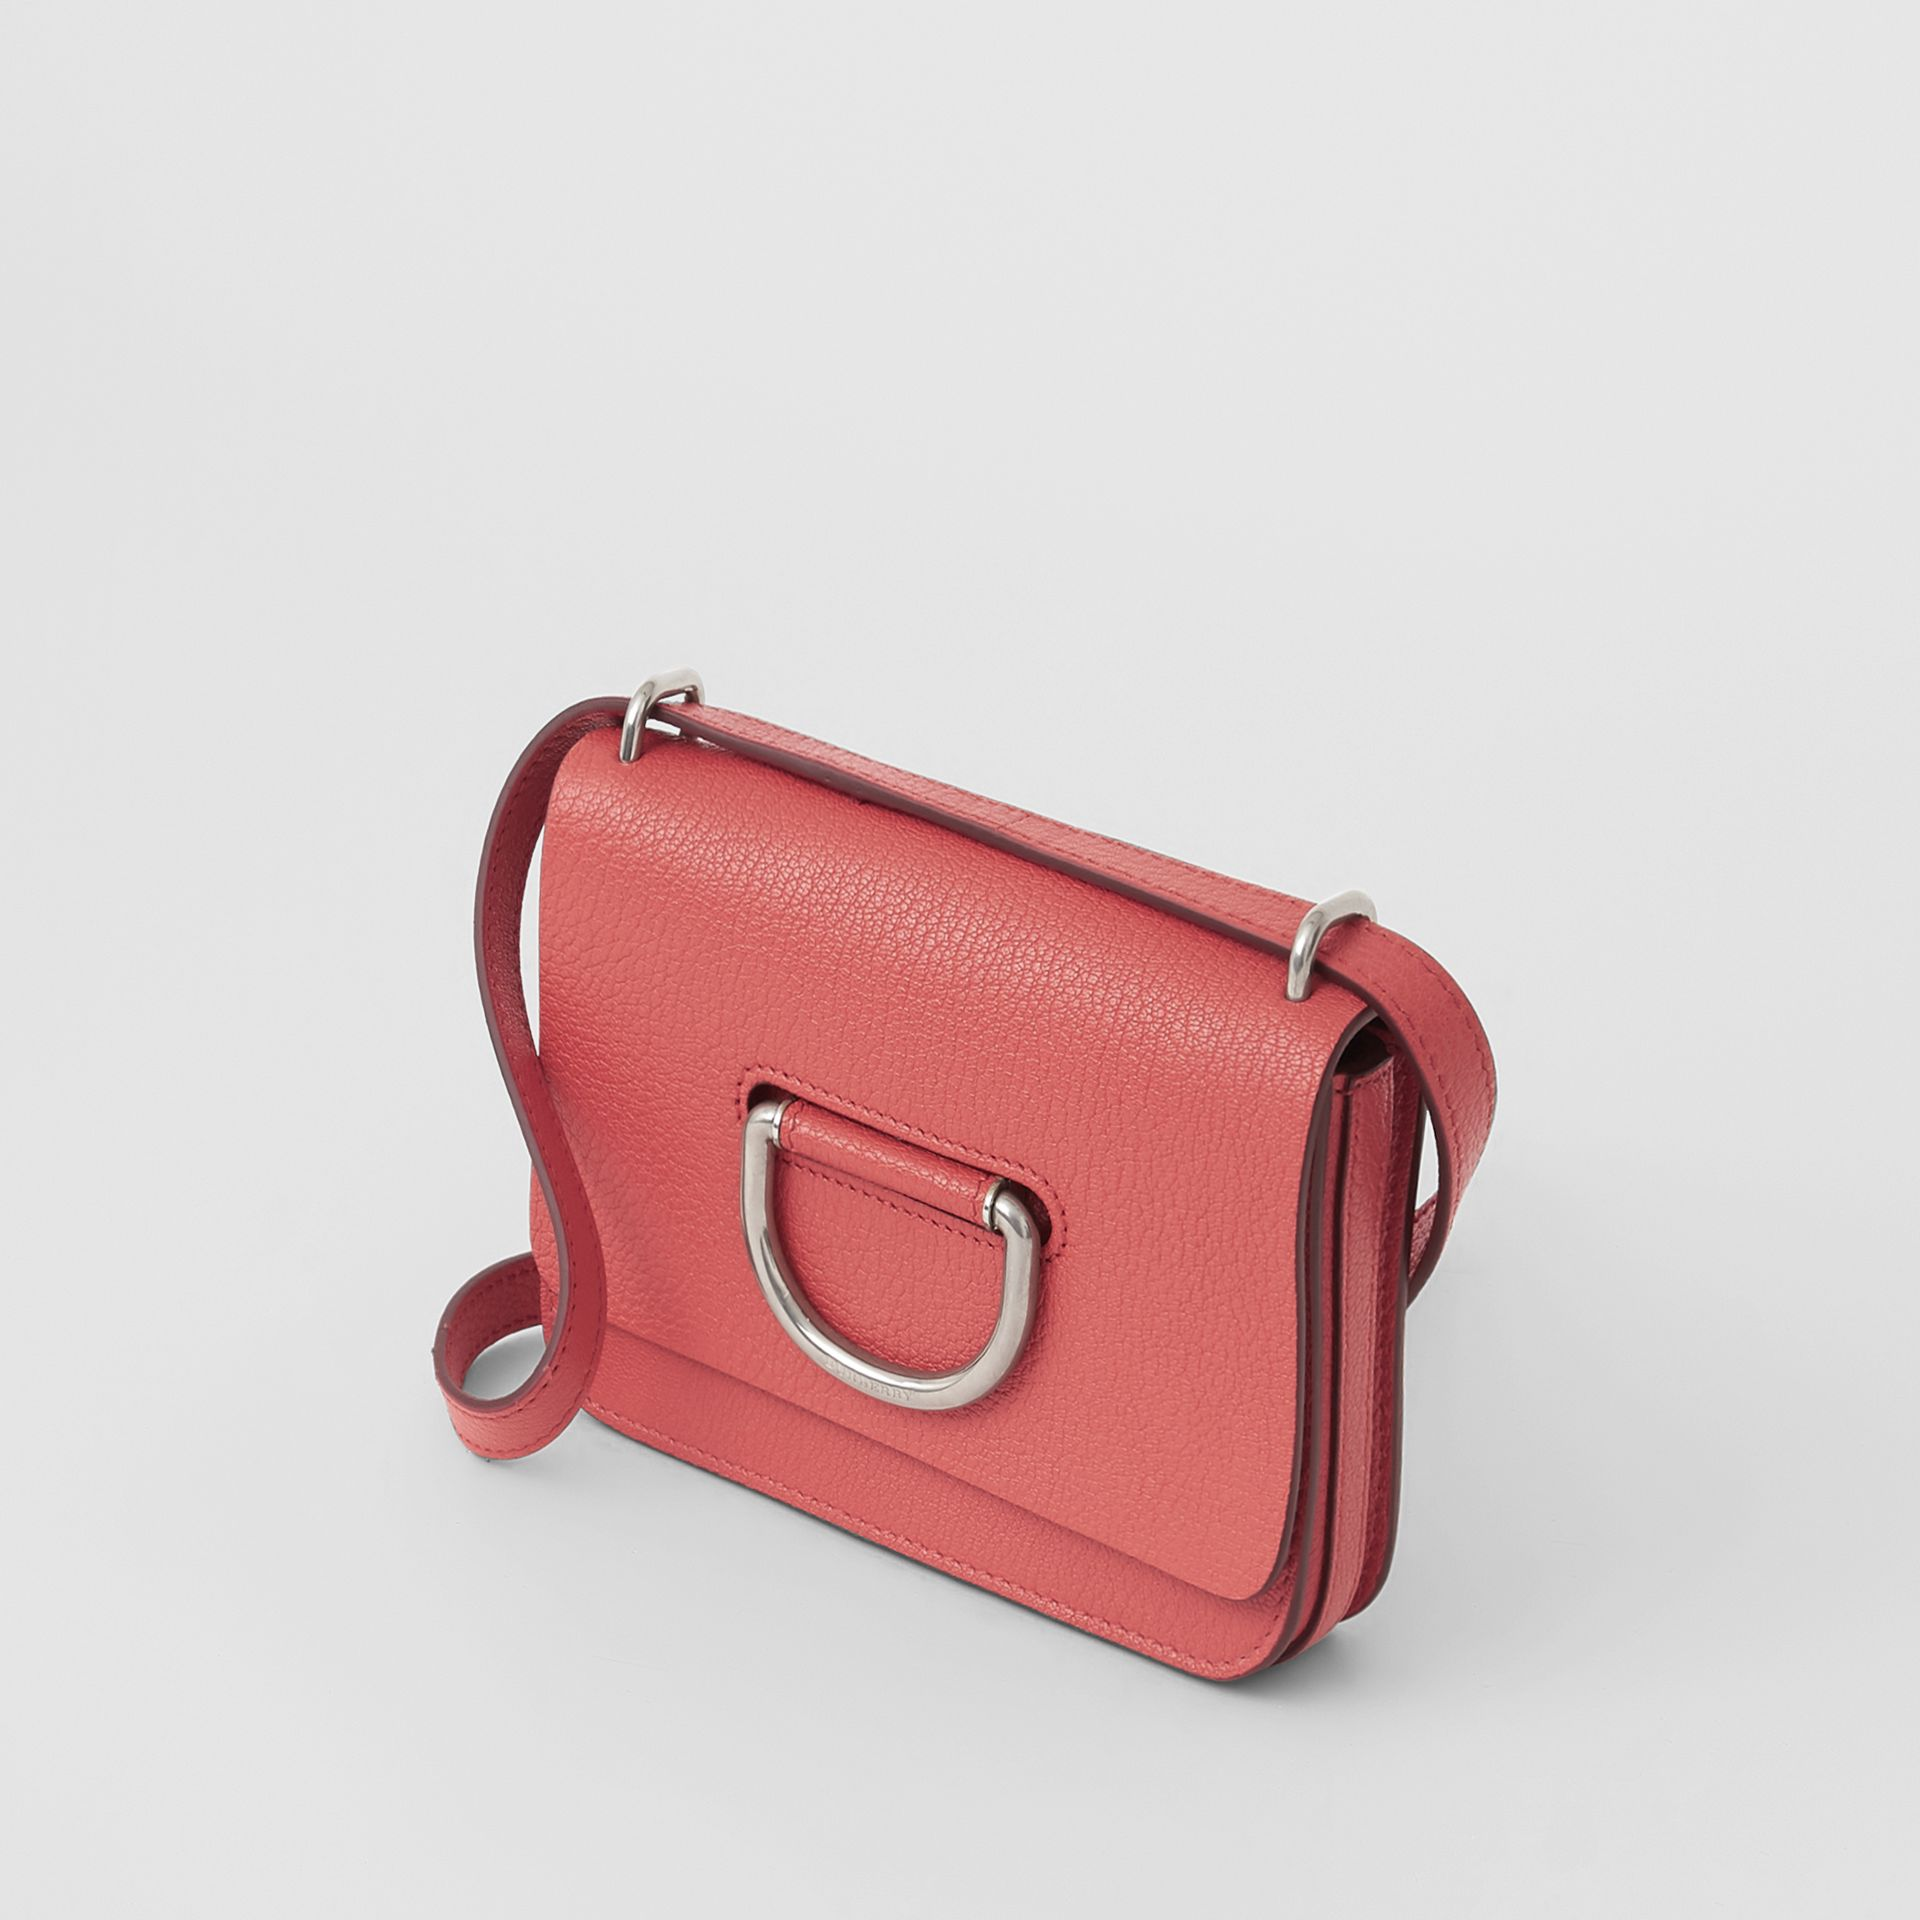 Borsa The D-ring mini in pelle (Rosa Corallo Brillante) - Donna | Burberry - immagine della galleria 4